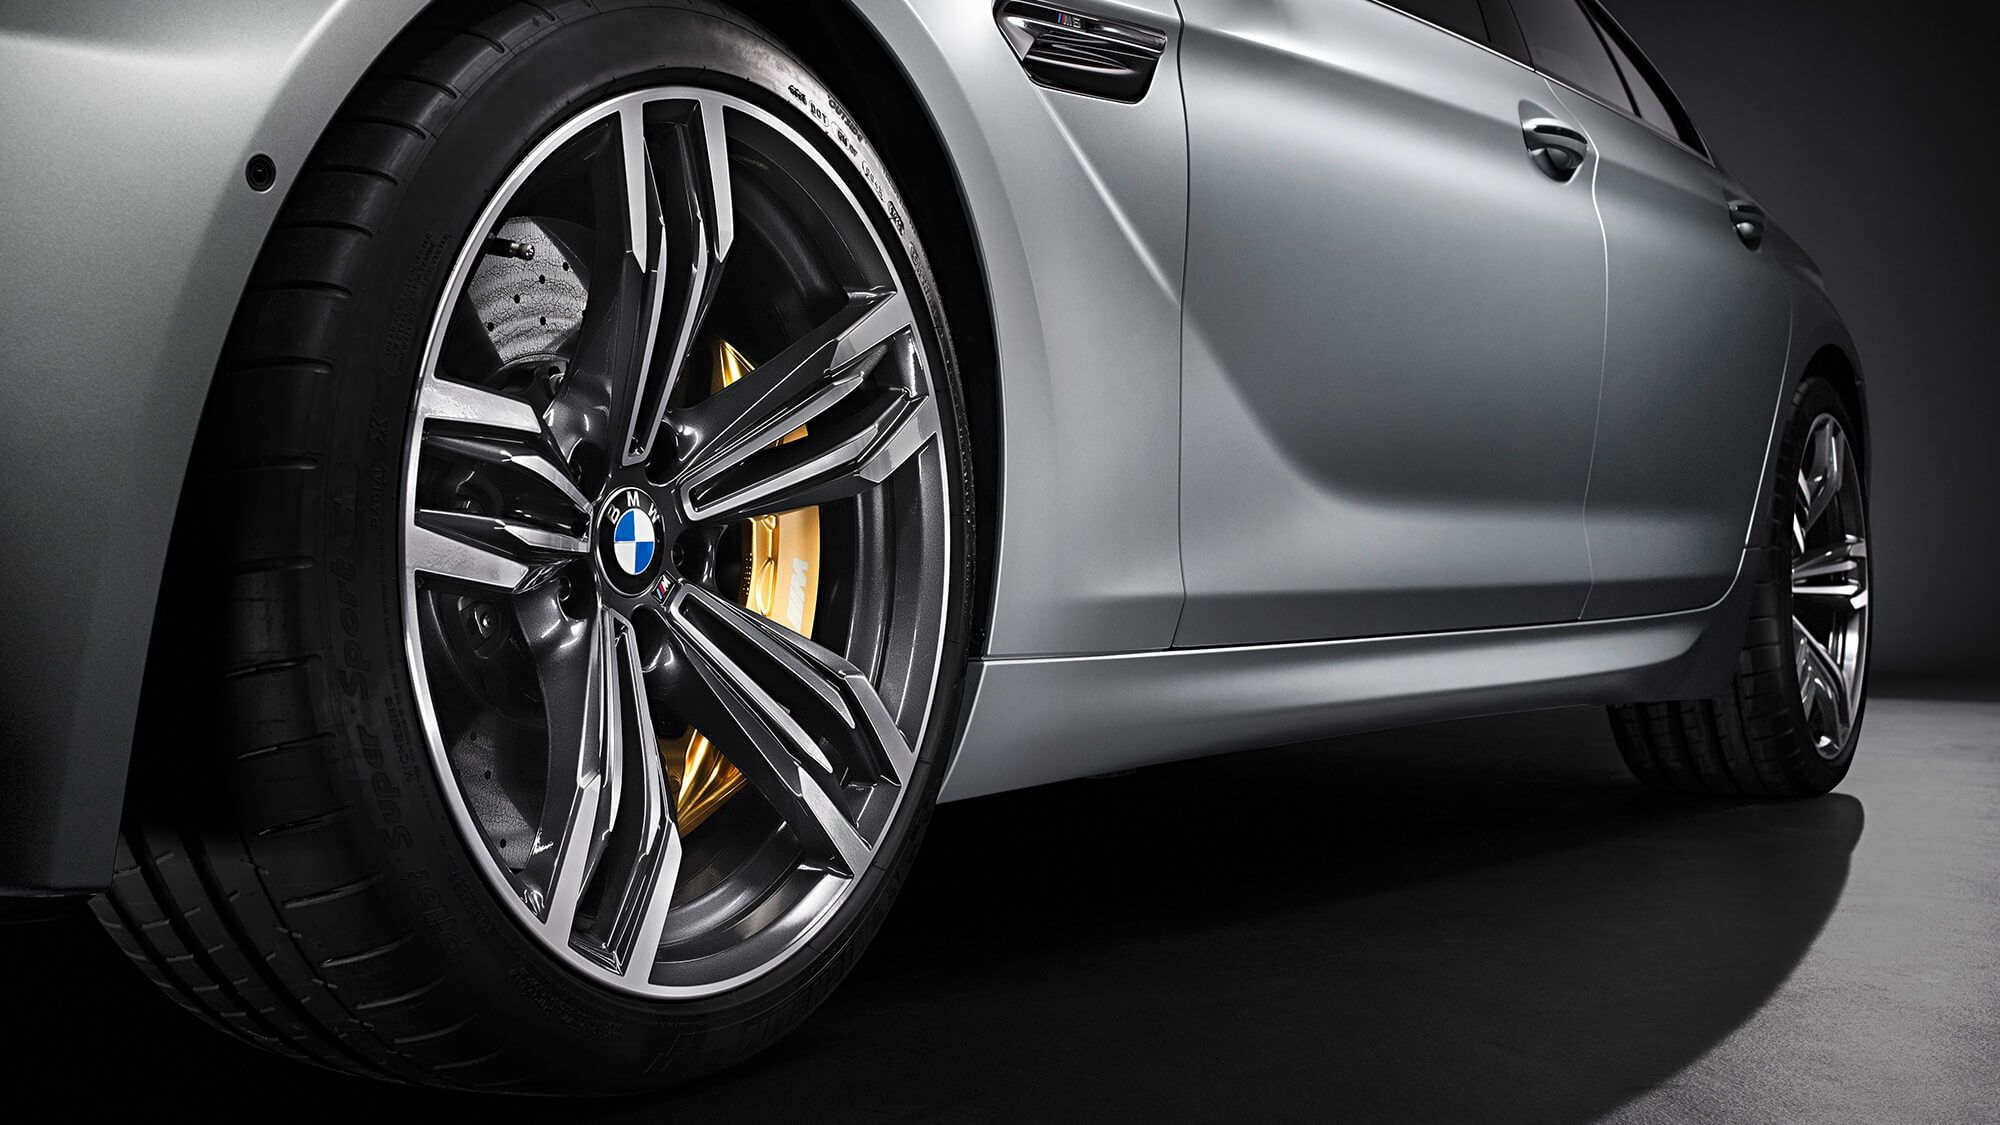 New BMW M6 Gran Coupe For Sale | Offers & Deals | On Finance